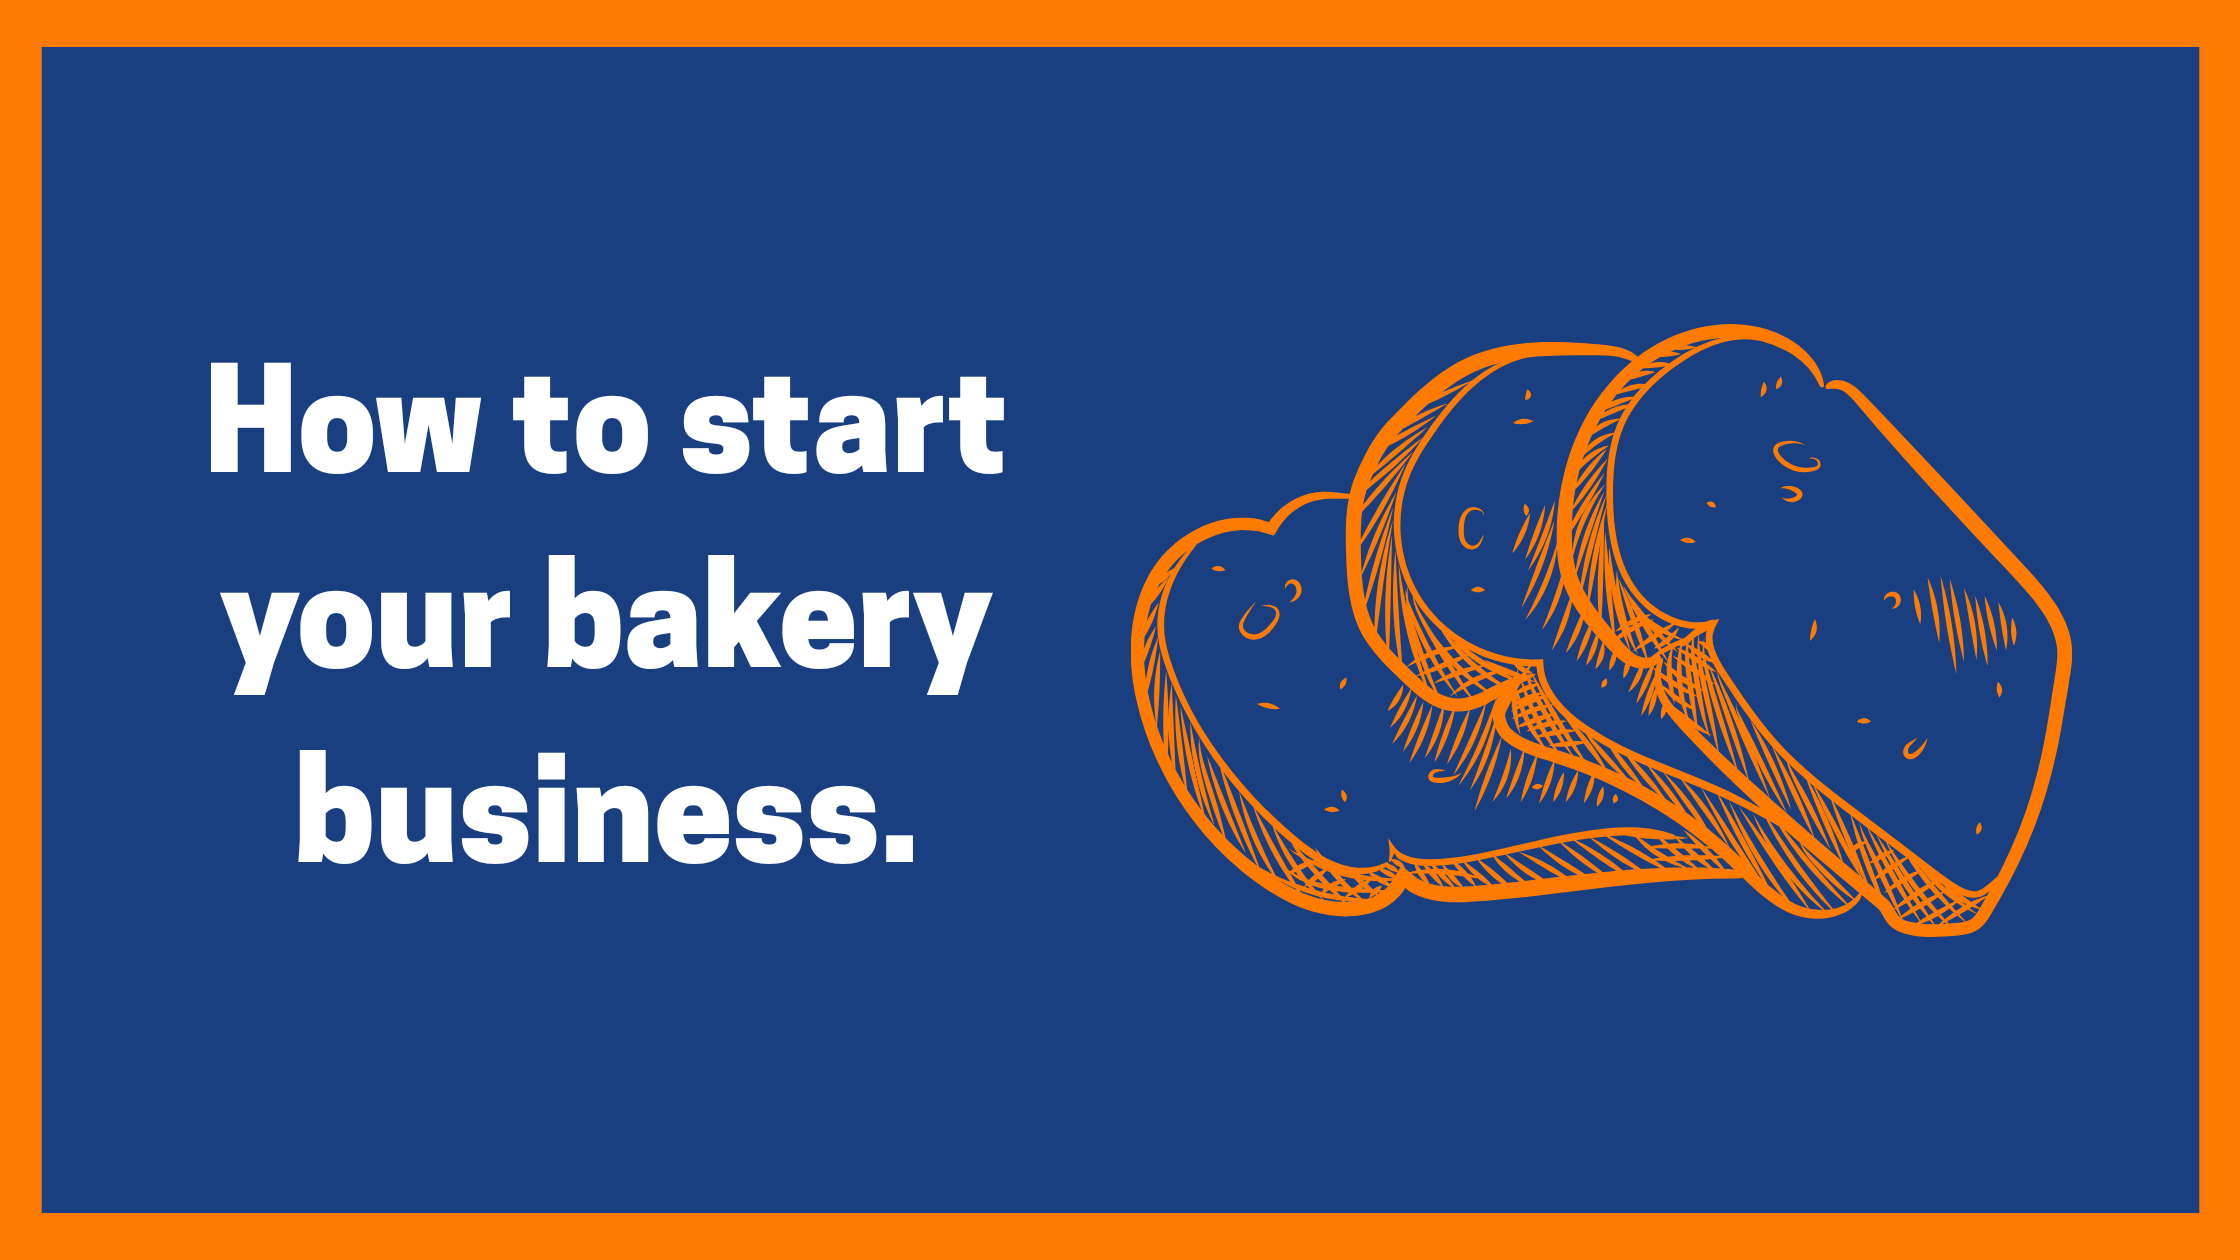 How To Start Your Bakery Business